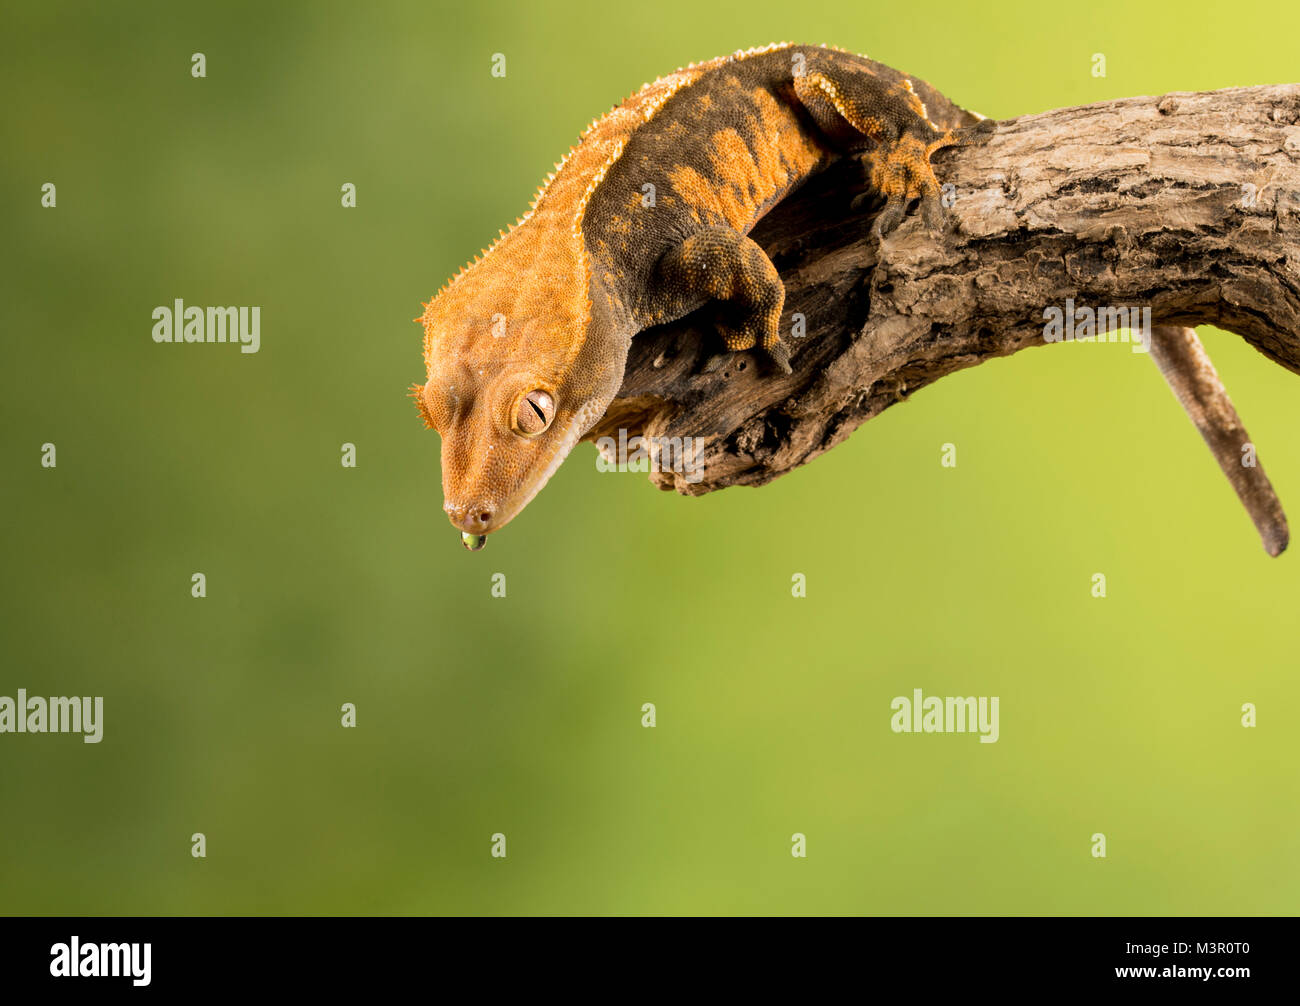 Studio background  Gecko on a branch - Stock Image